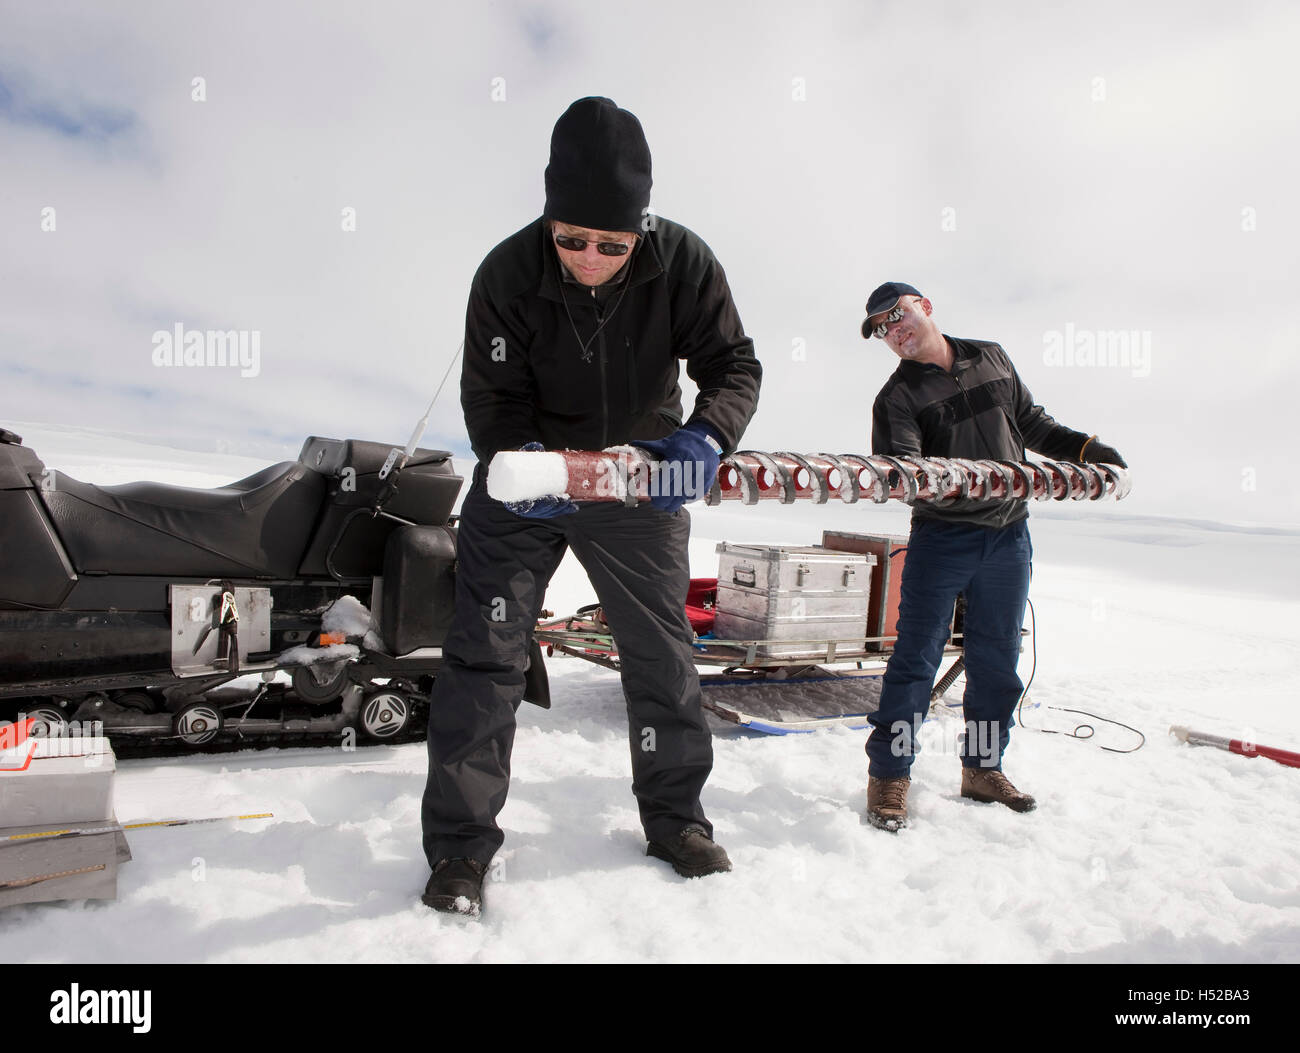 Scientists with ice core samples doing glacial research on Vatnajokul Ice Cap, Iceland - Stock Image